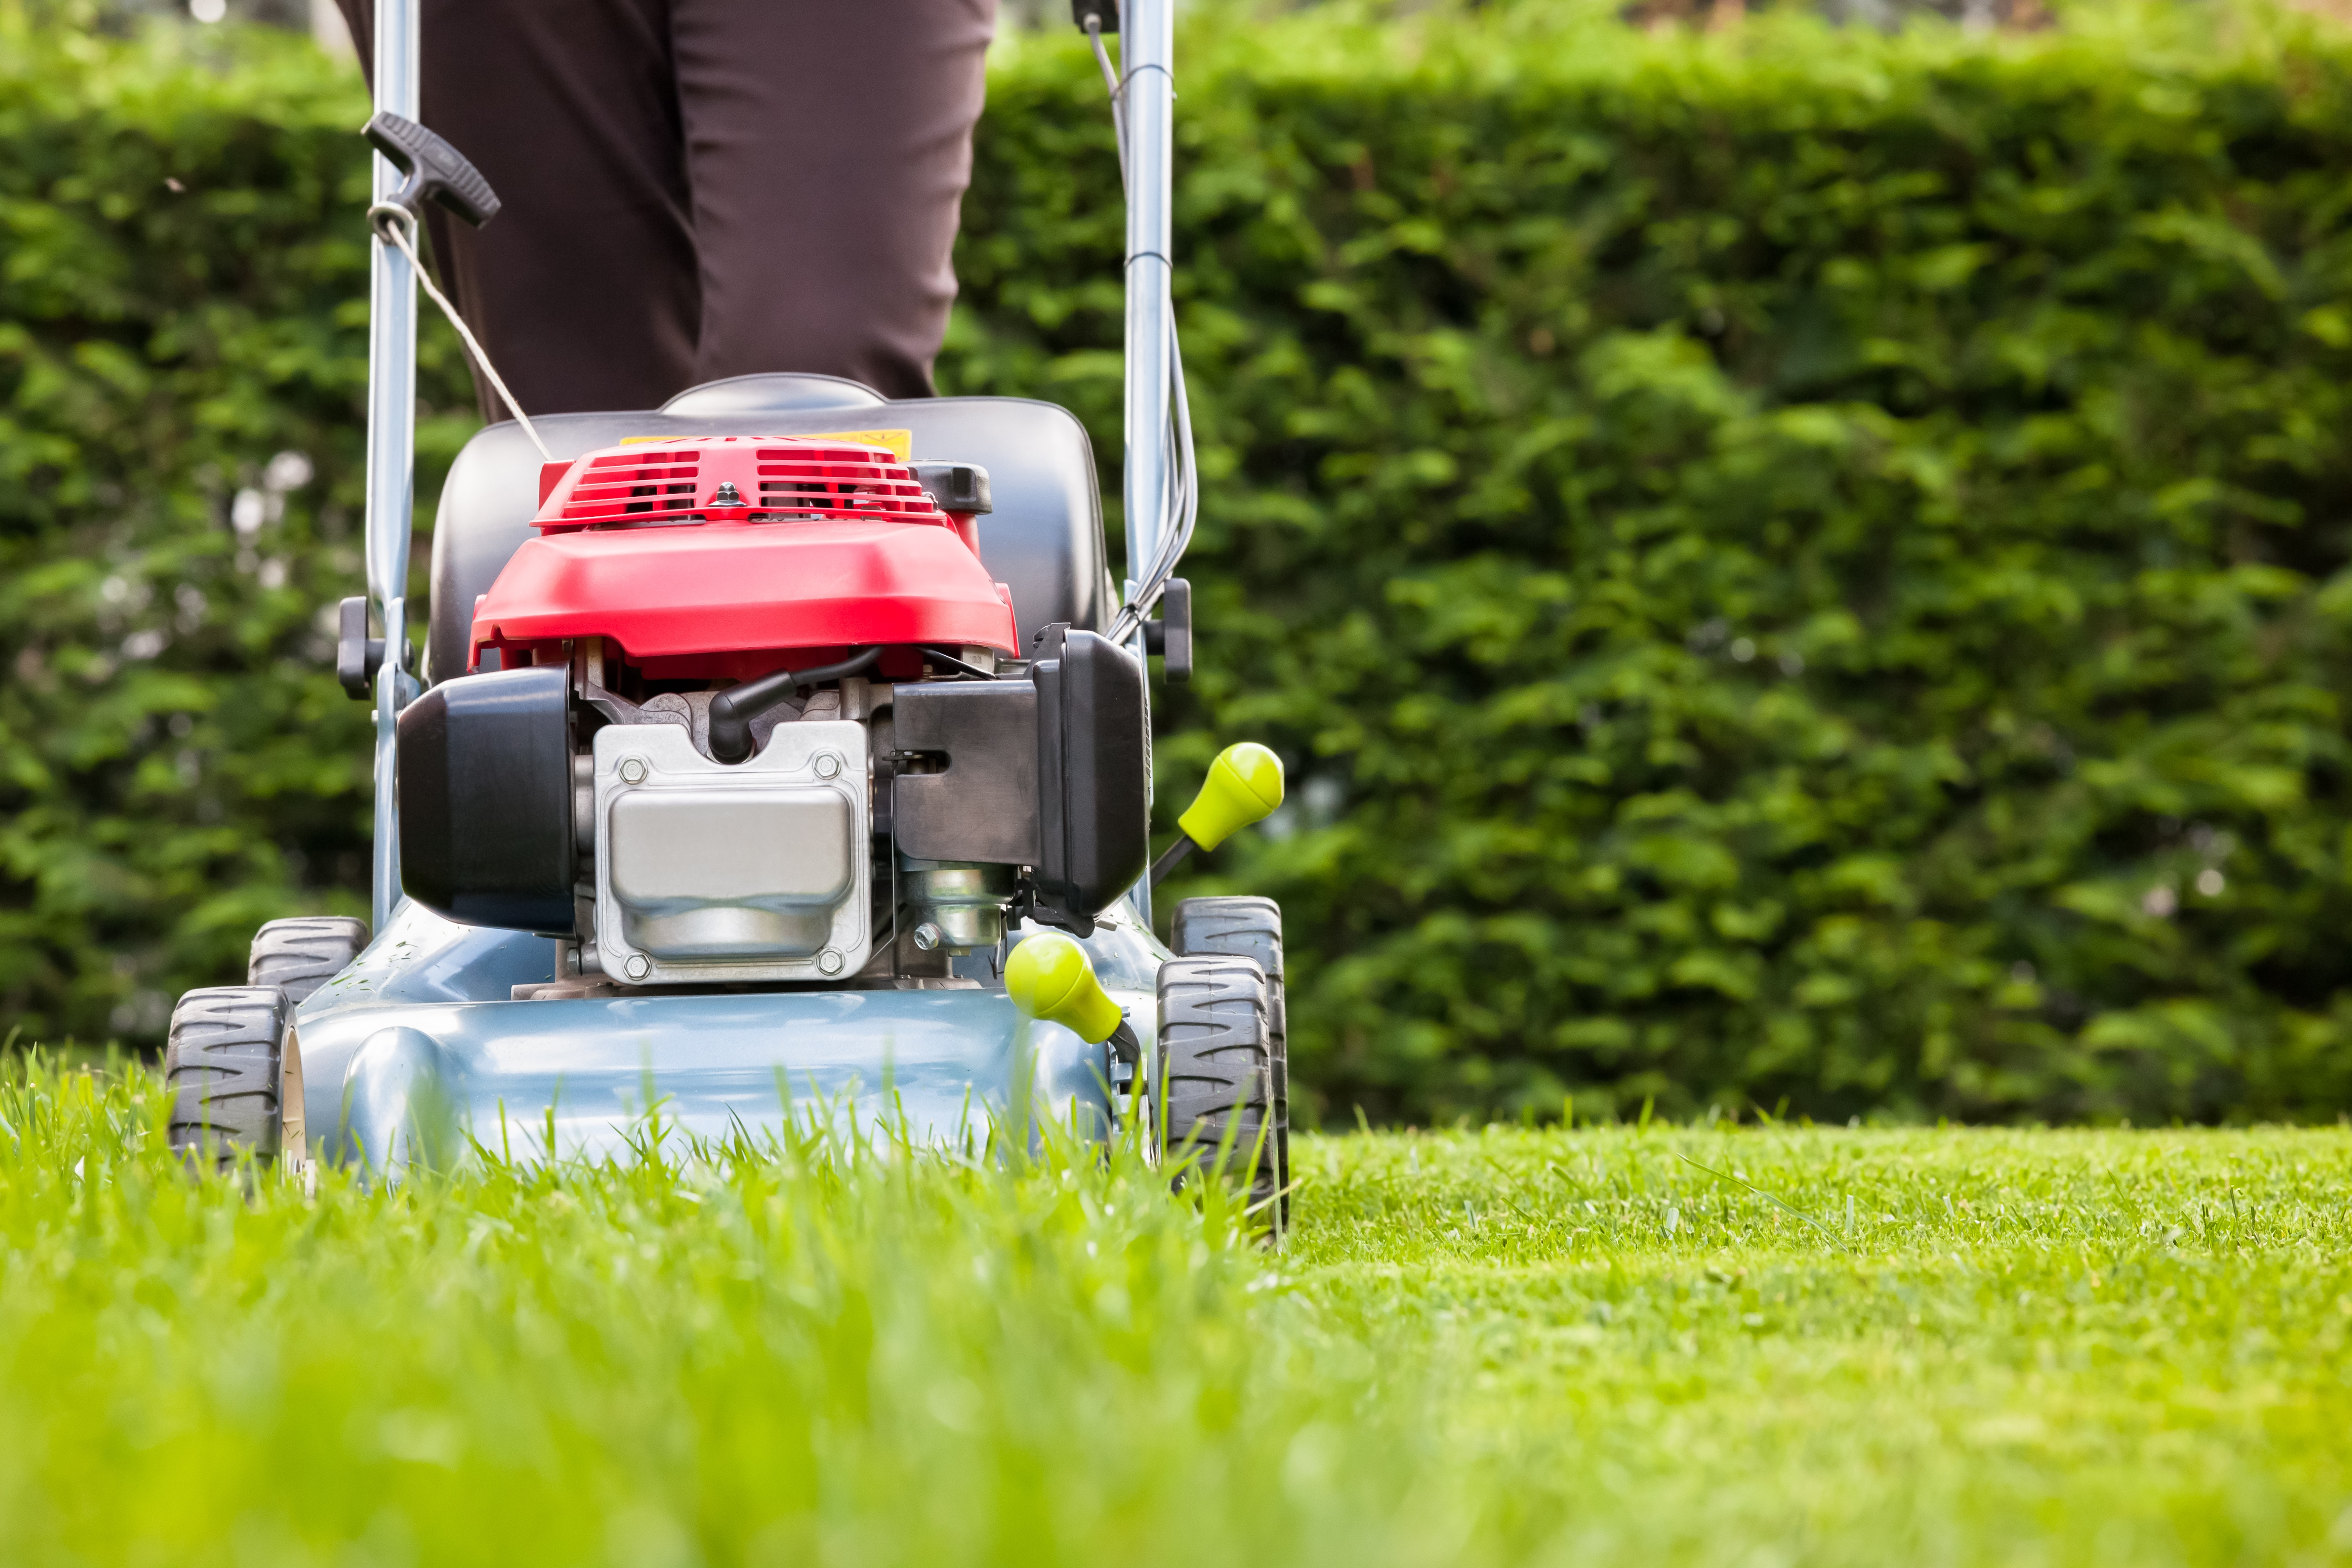 The final mow before winter should be adjusted so that the lawn is cut shorter than usual.